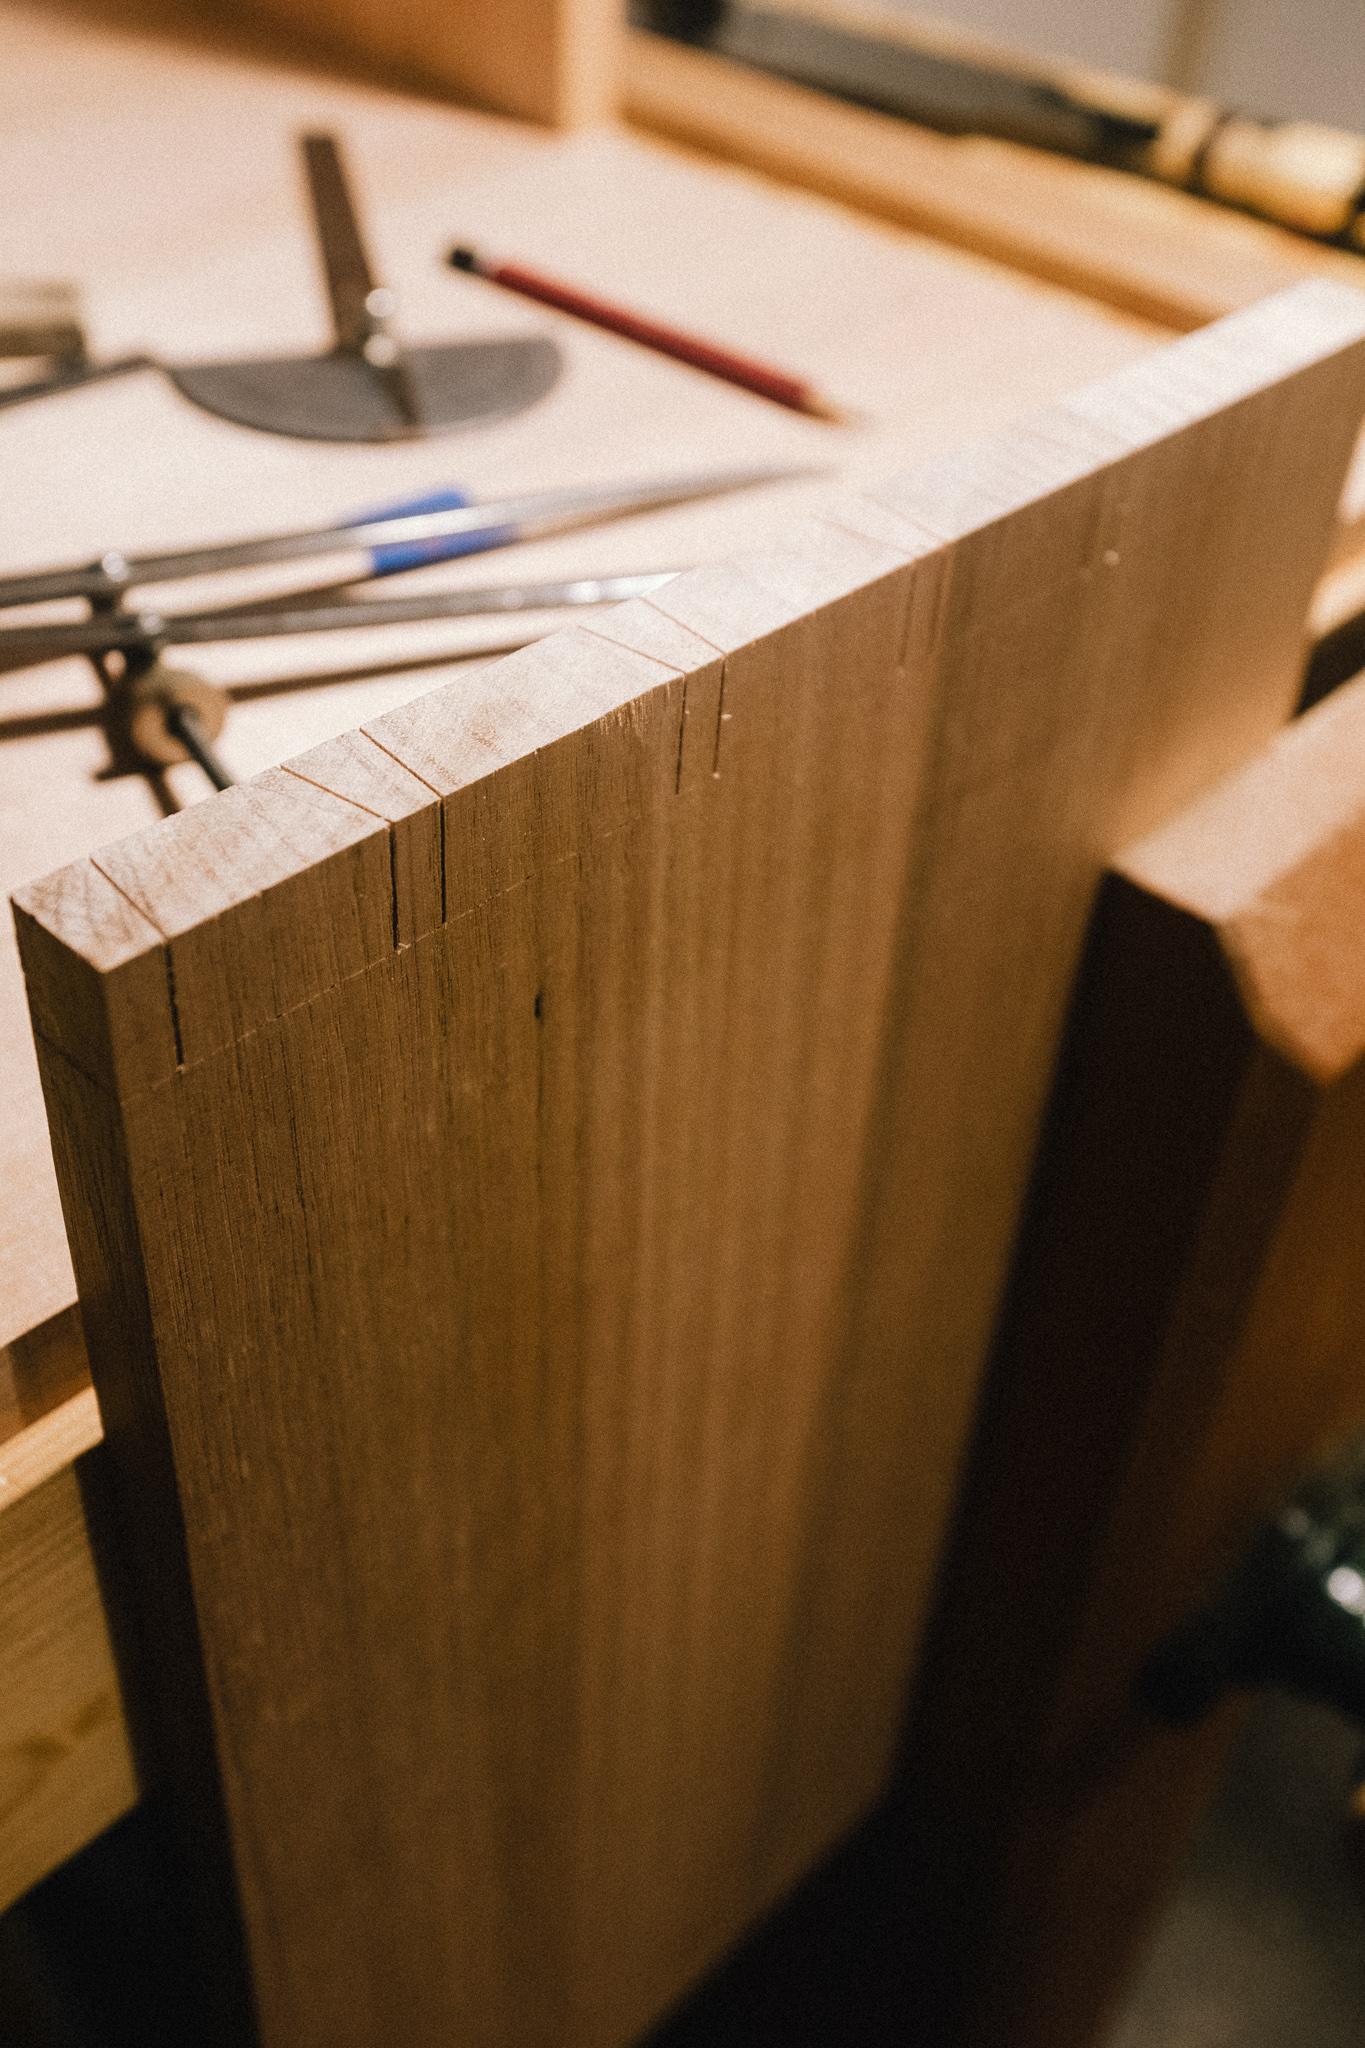 Dovetail saw lines